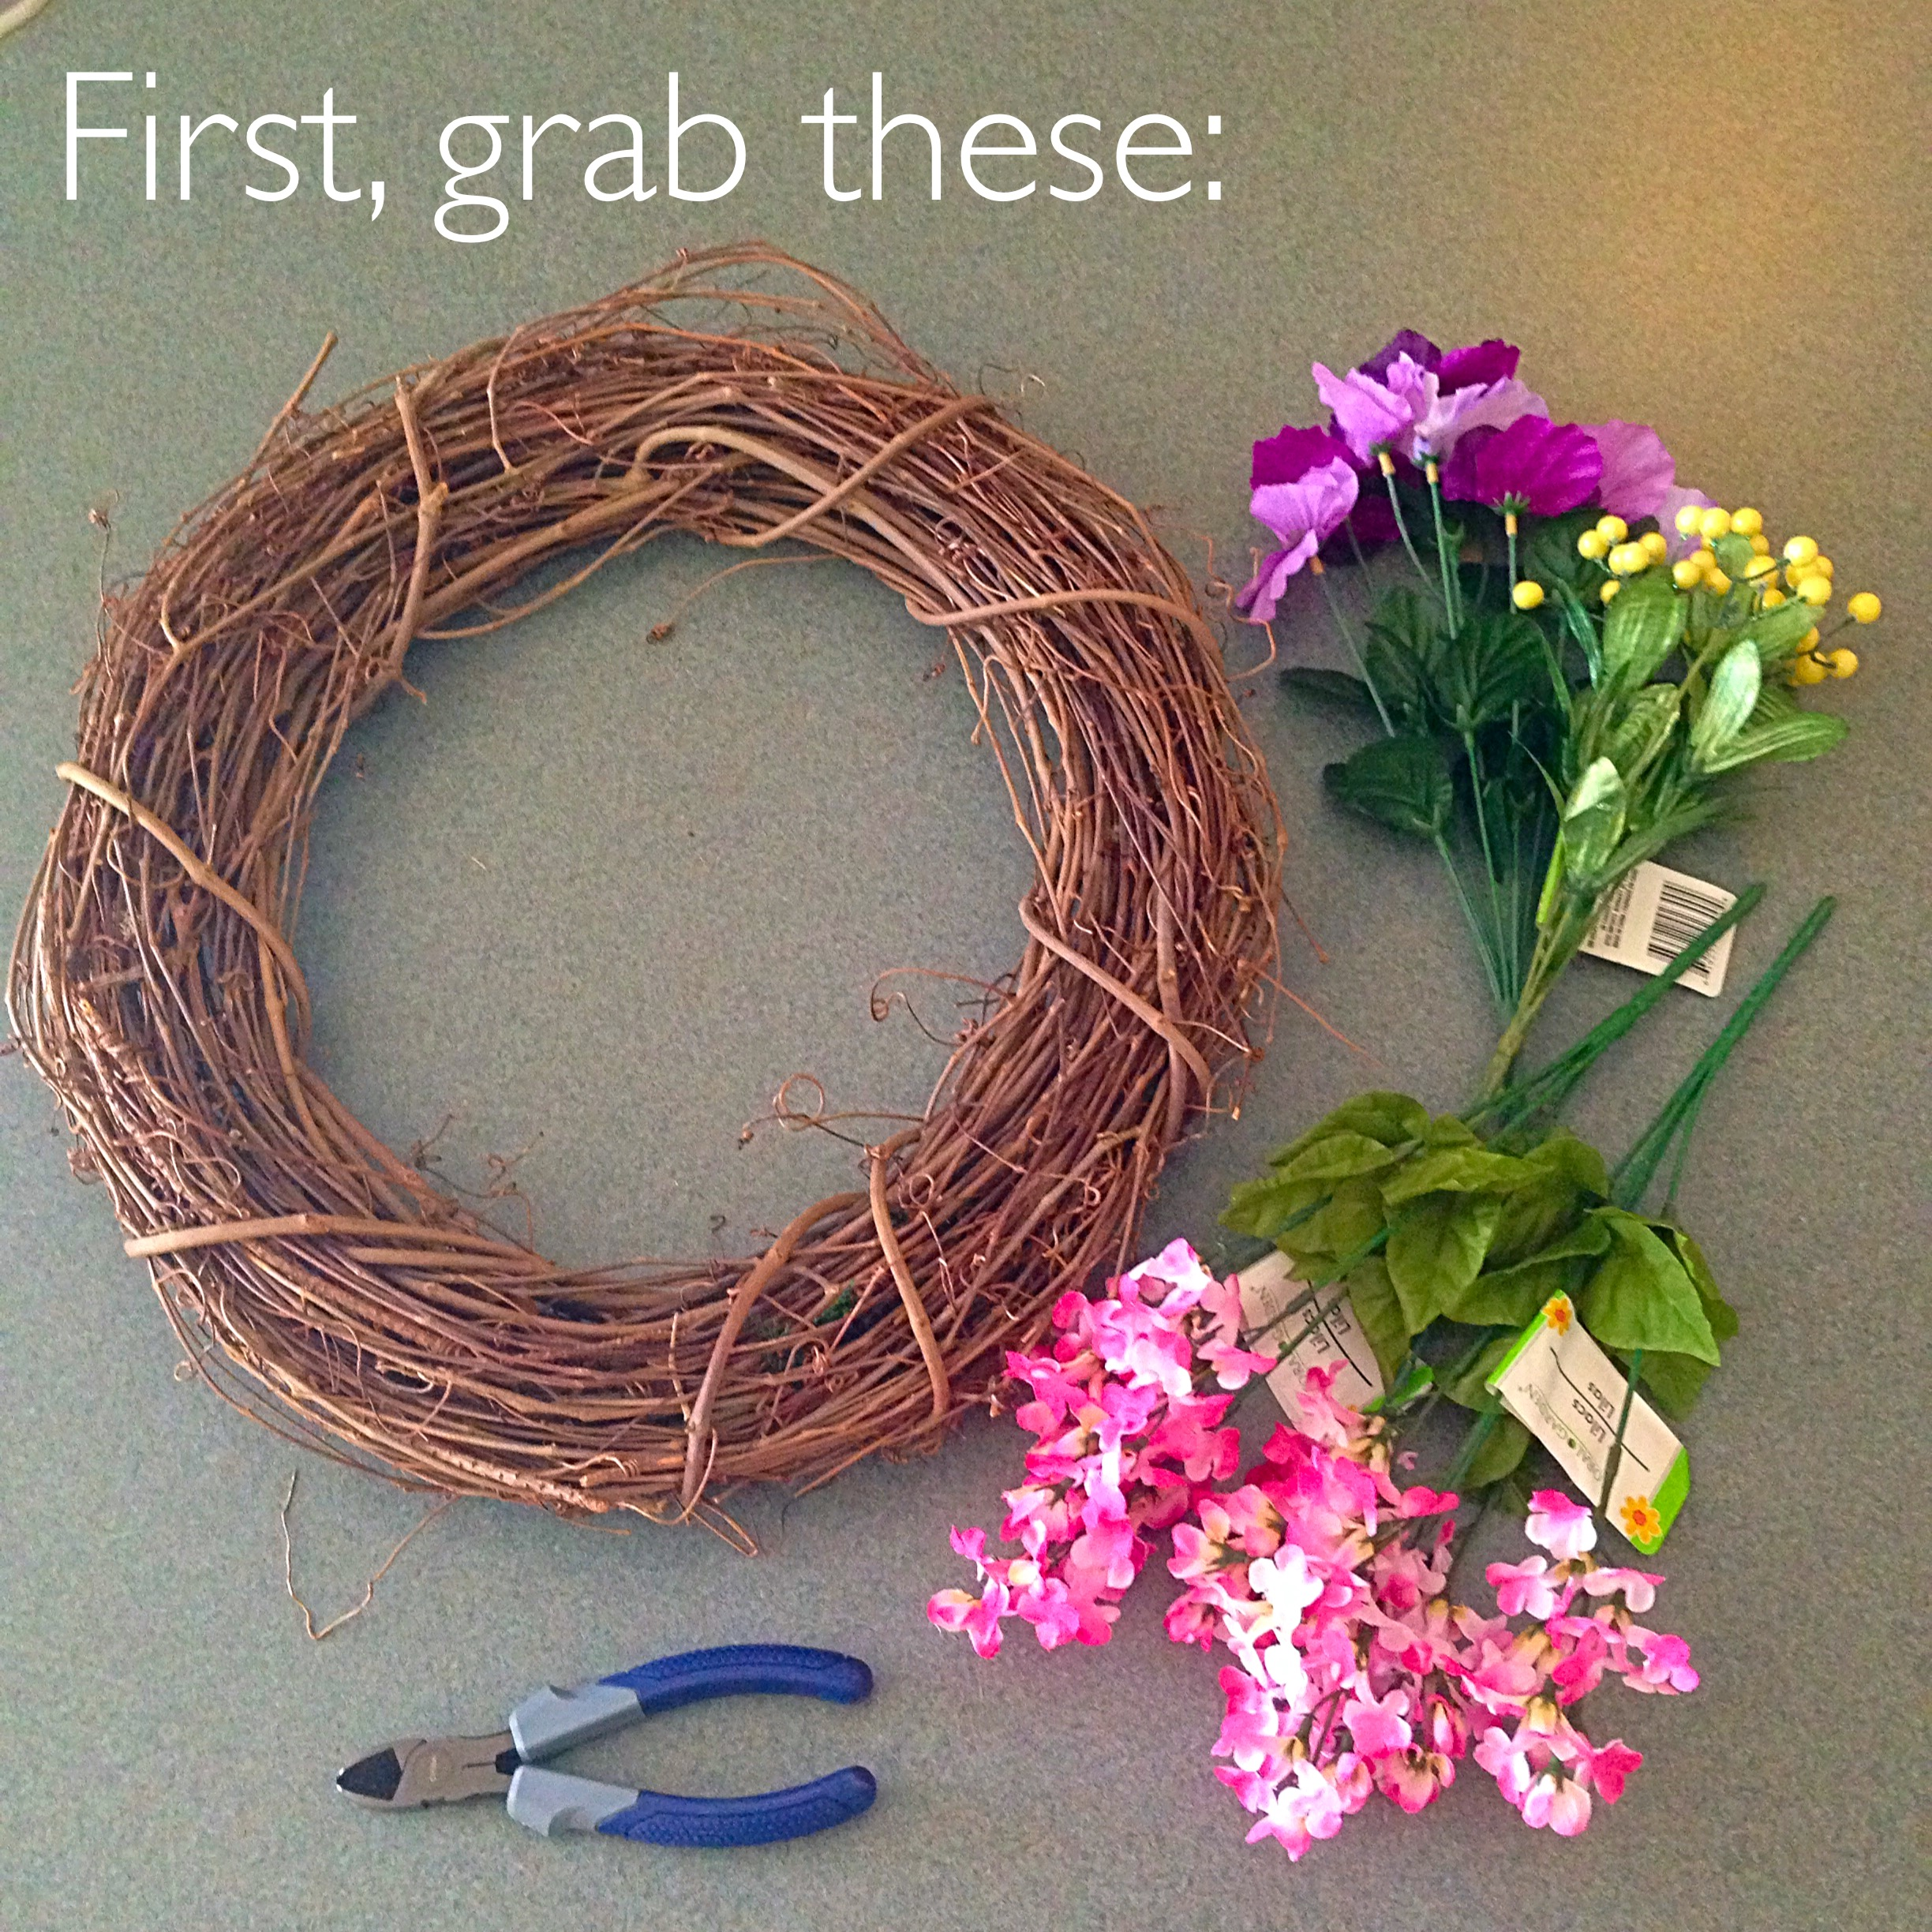 5 Minute DIY Spring Wreath